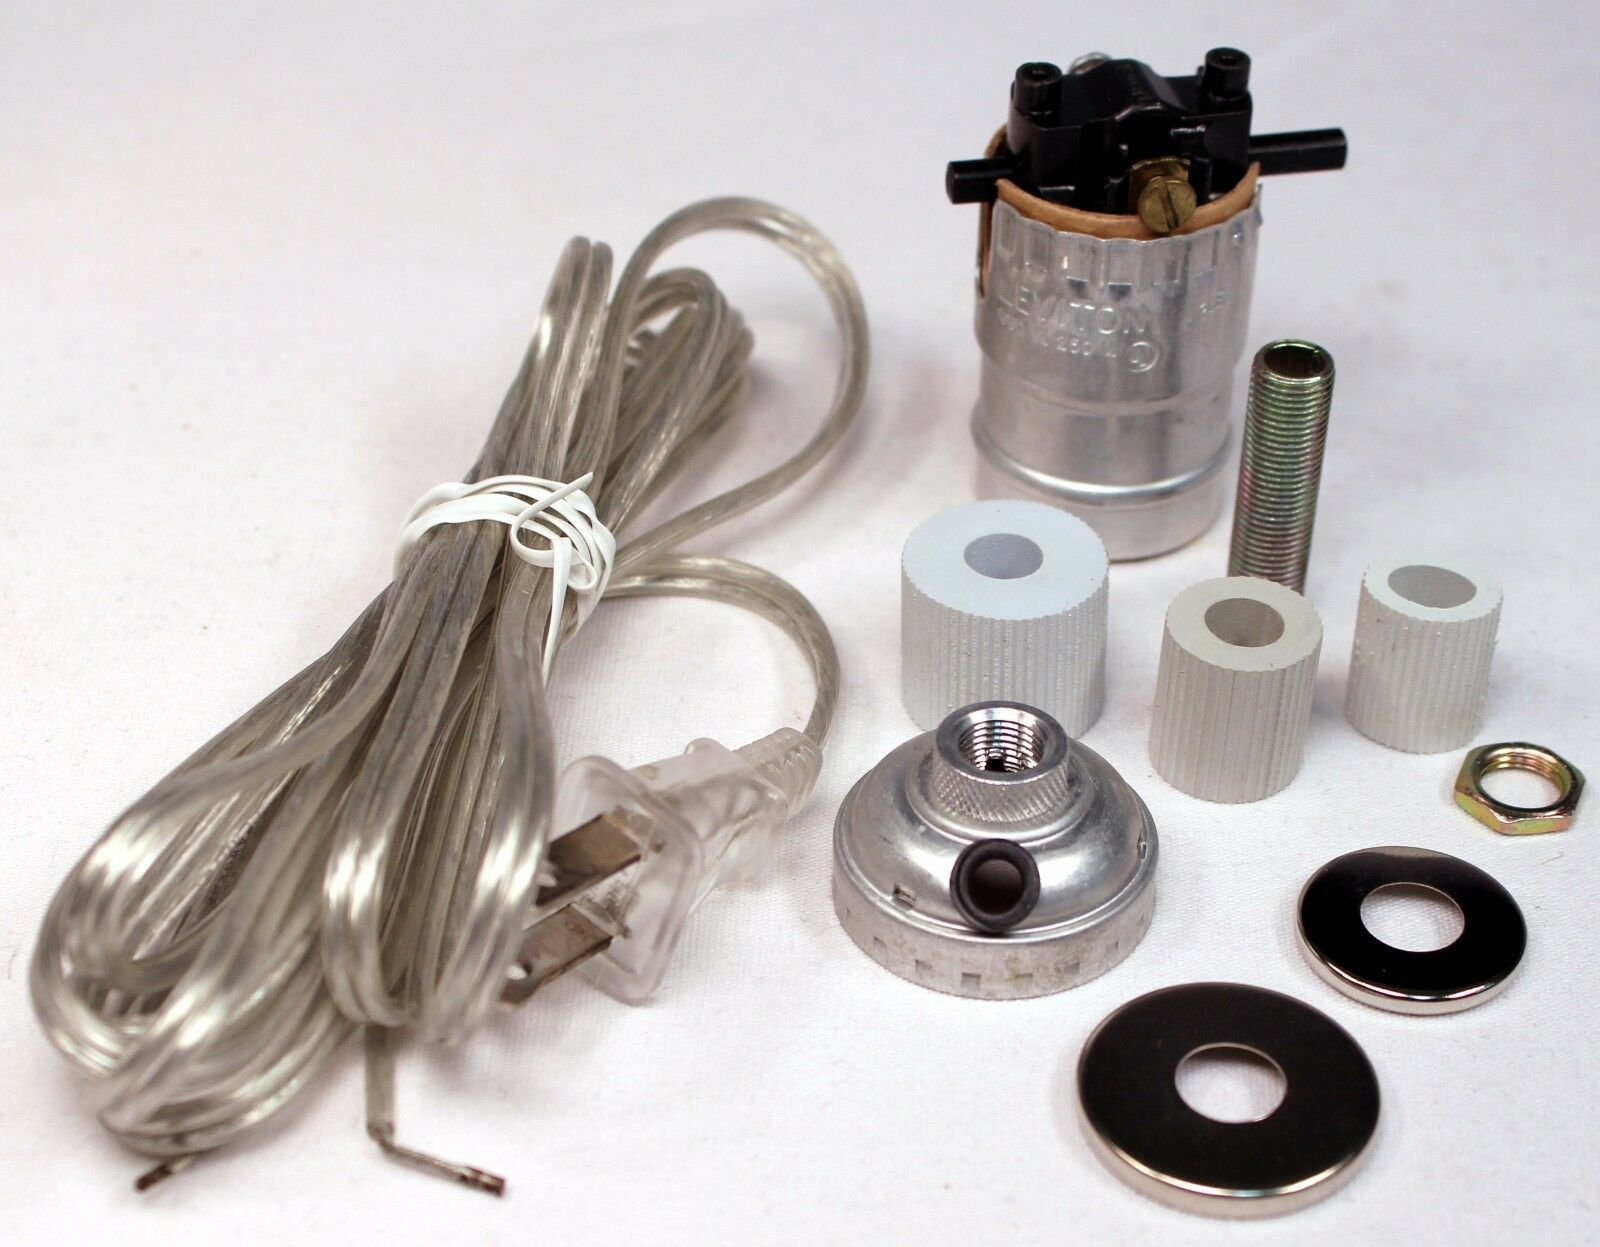 silver make a lamp wiring kit for wine oil bottle lamp conversion or rh ebay com lamp wiring kit lowes lamp wiring kit instructions